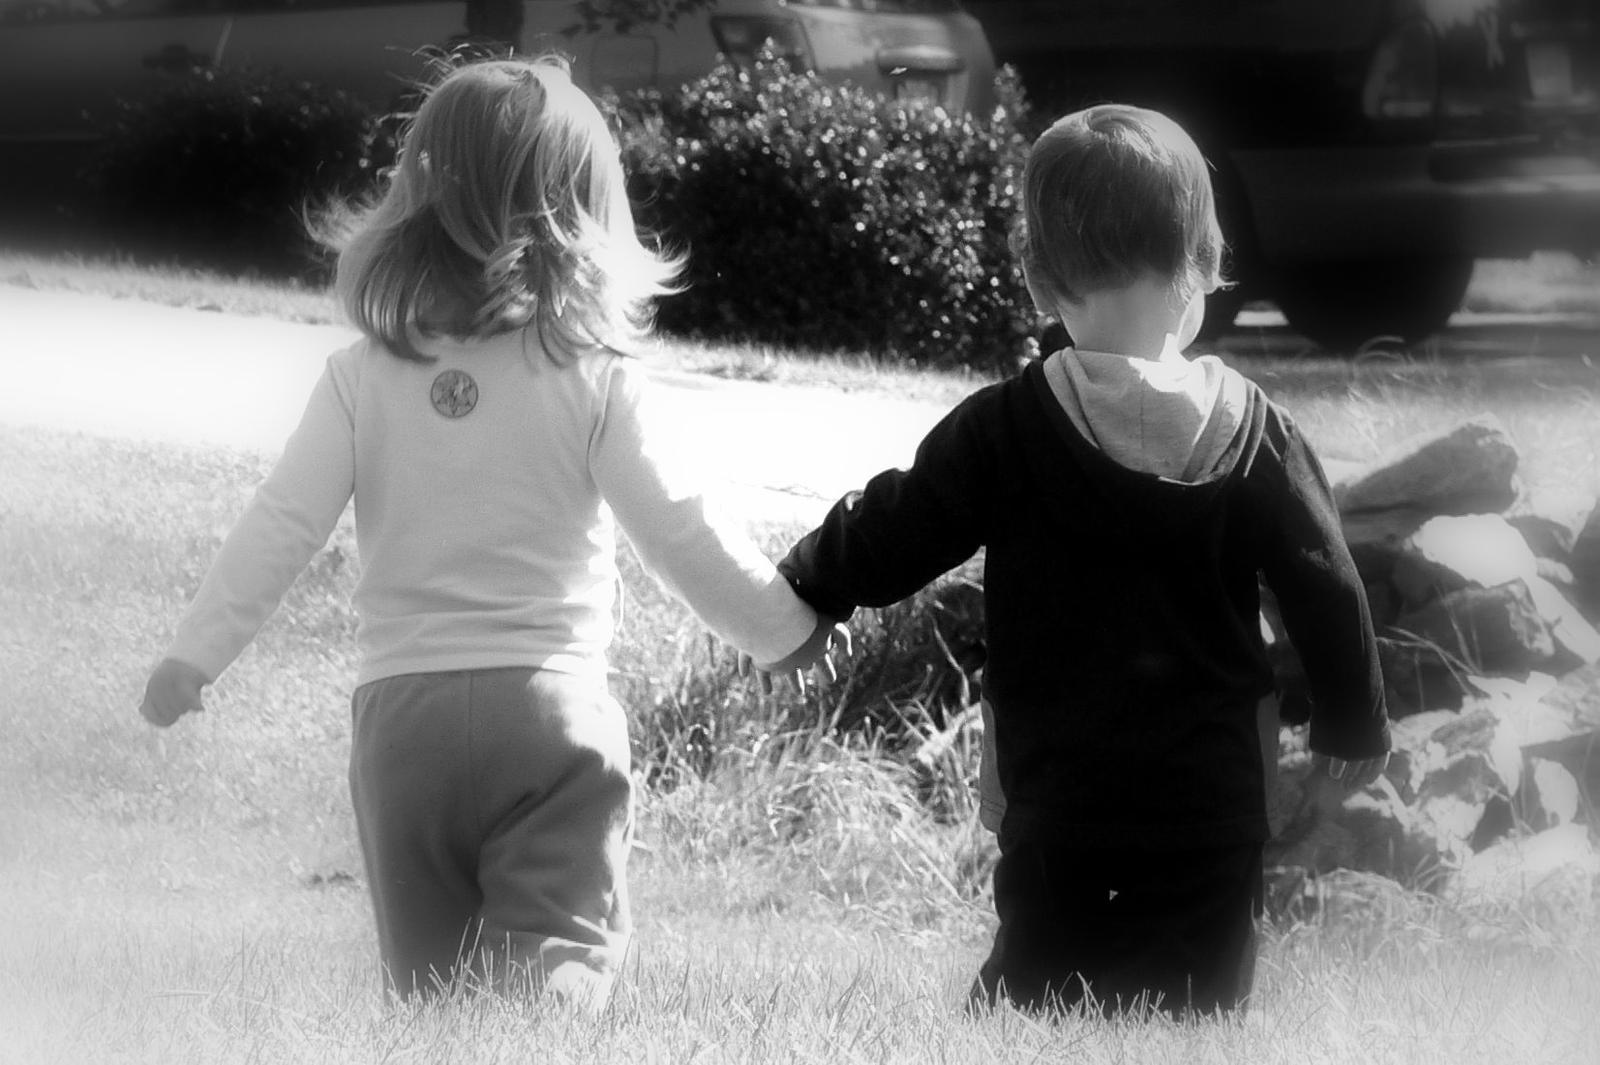 Boy and Girl Holding Hands Black White Image